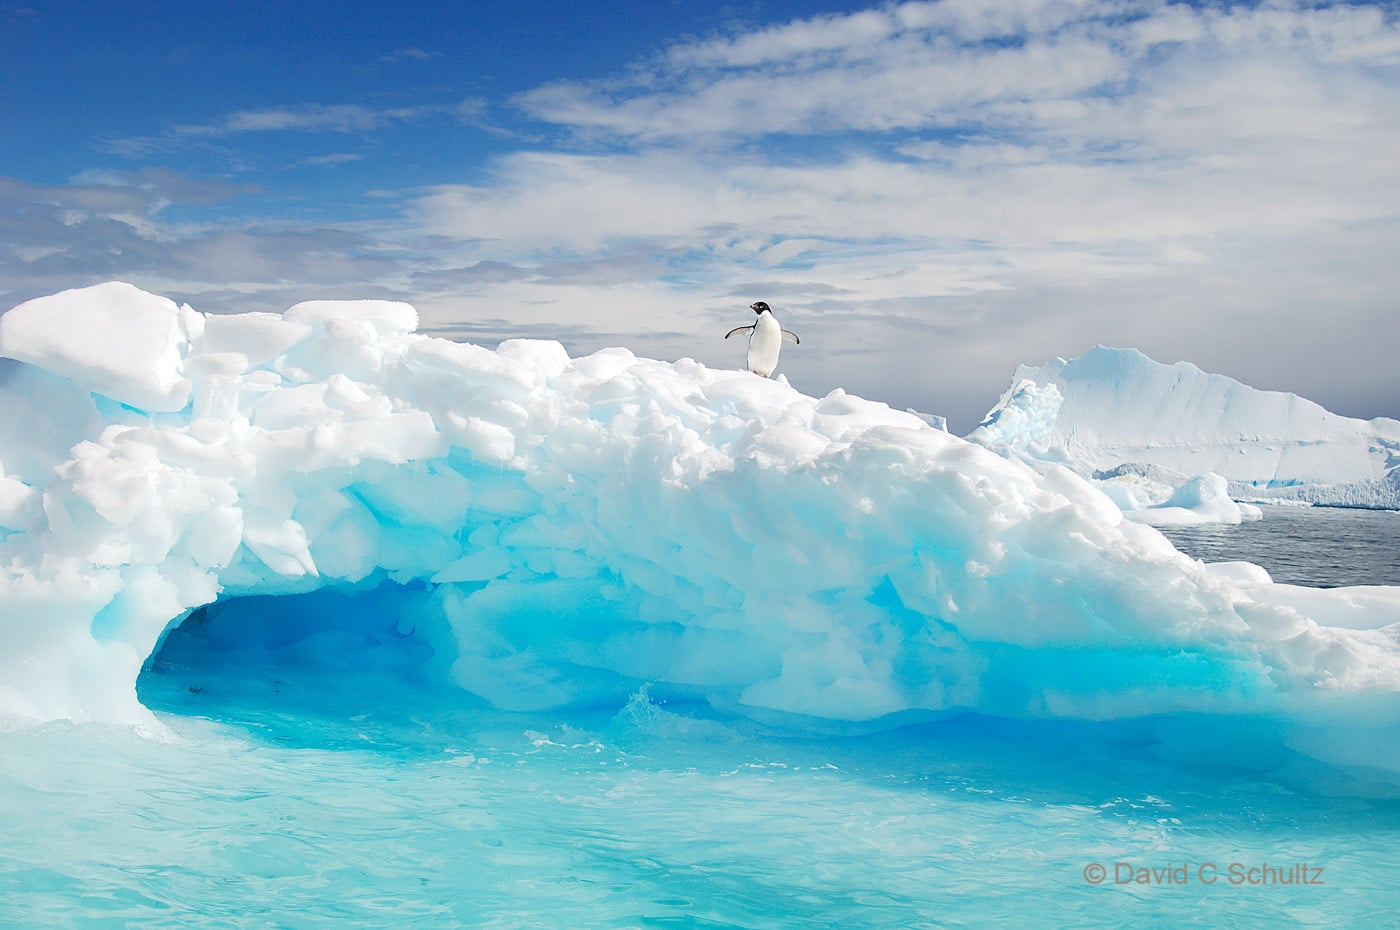 Adelie penguin on an iceberg in Antarctica - Image #163-368